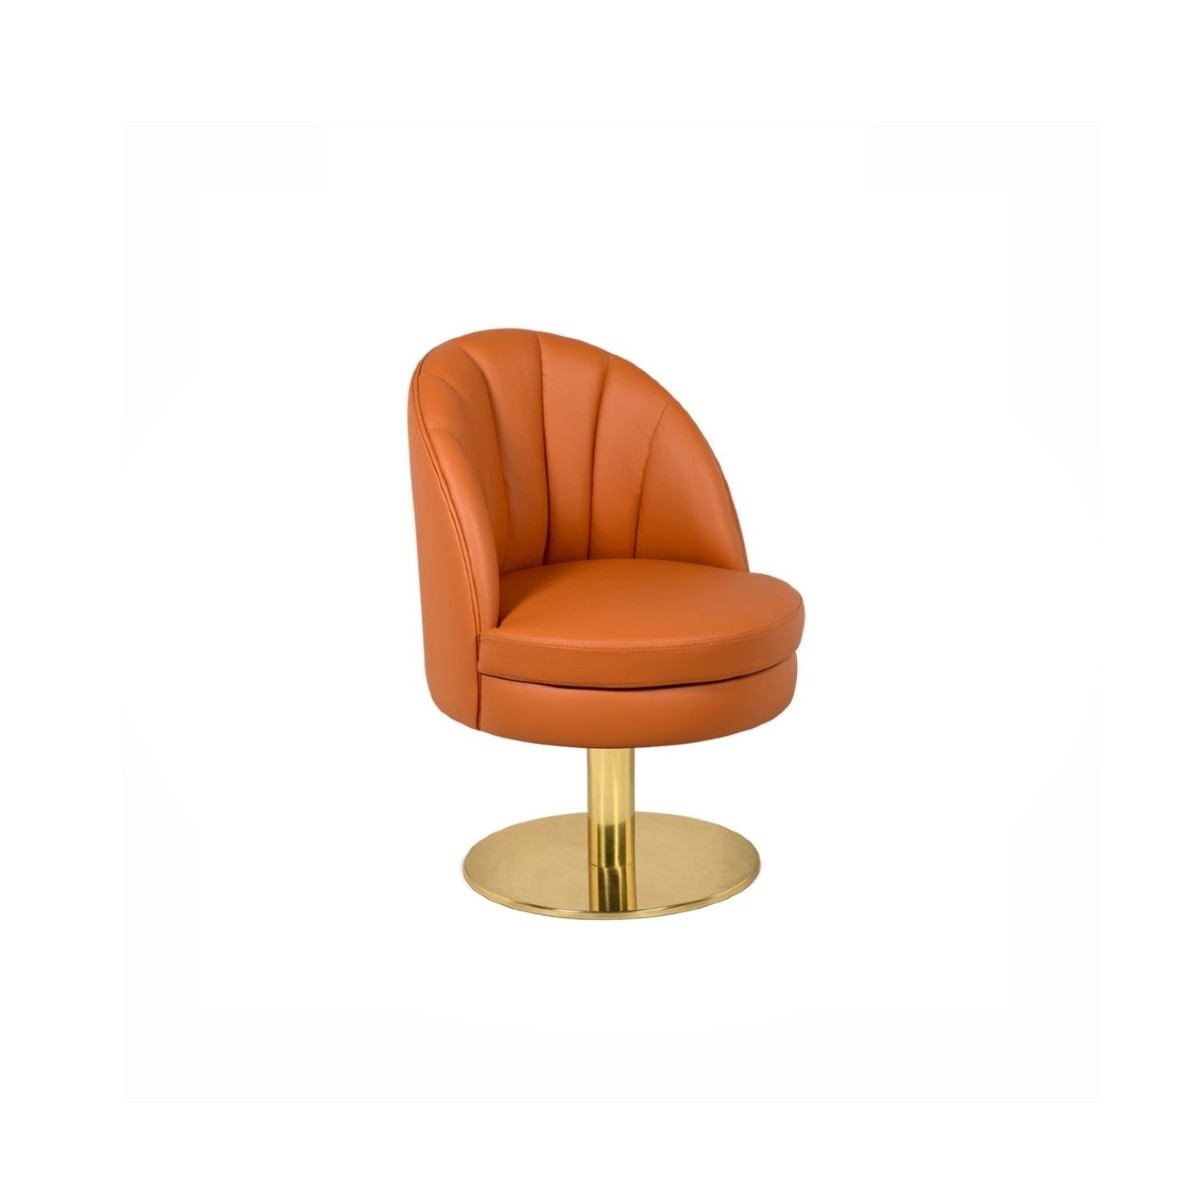 GABLE DINING CHAIR